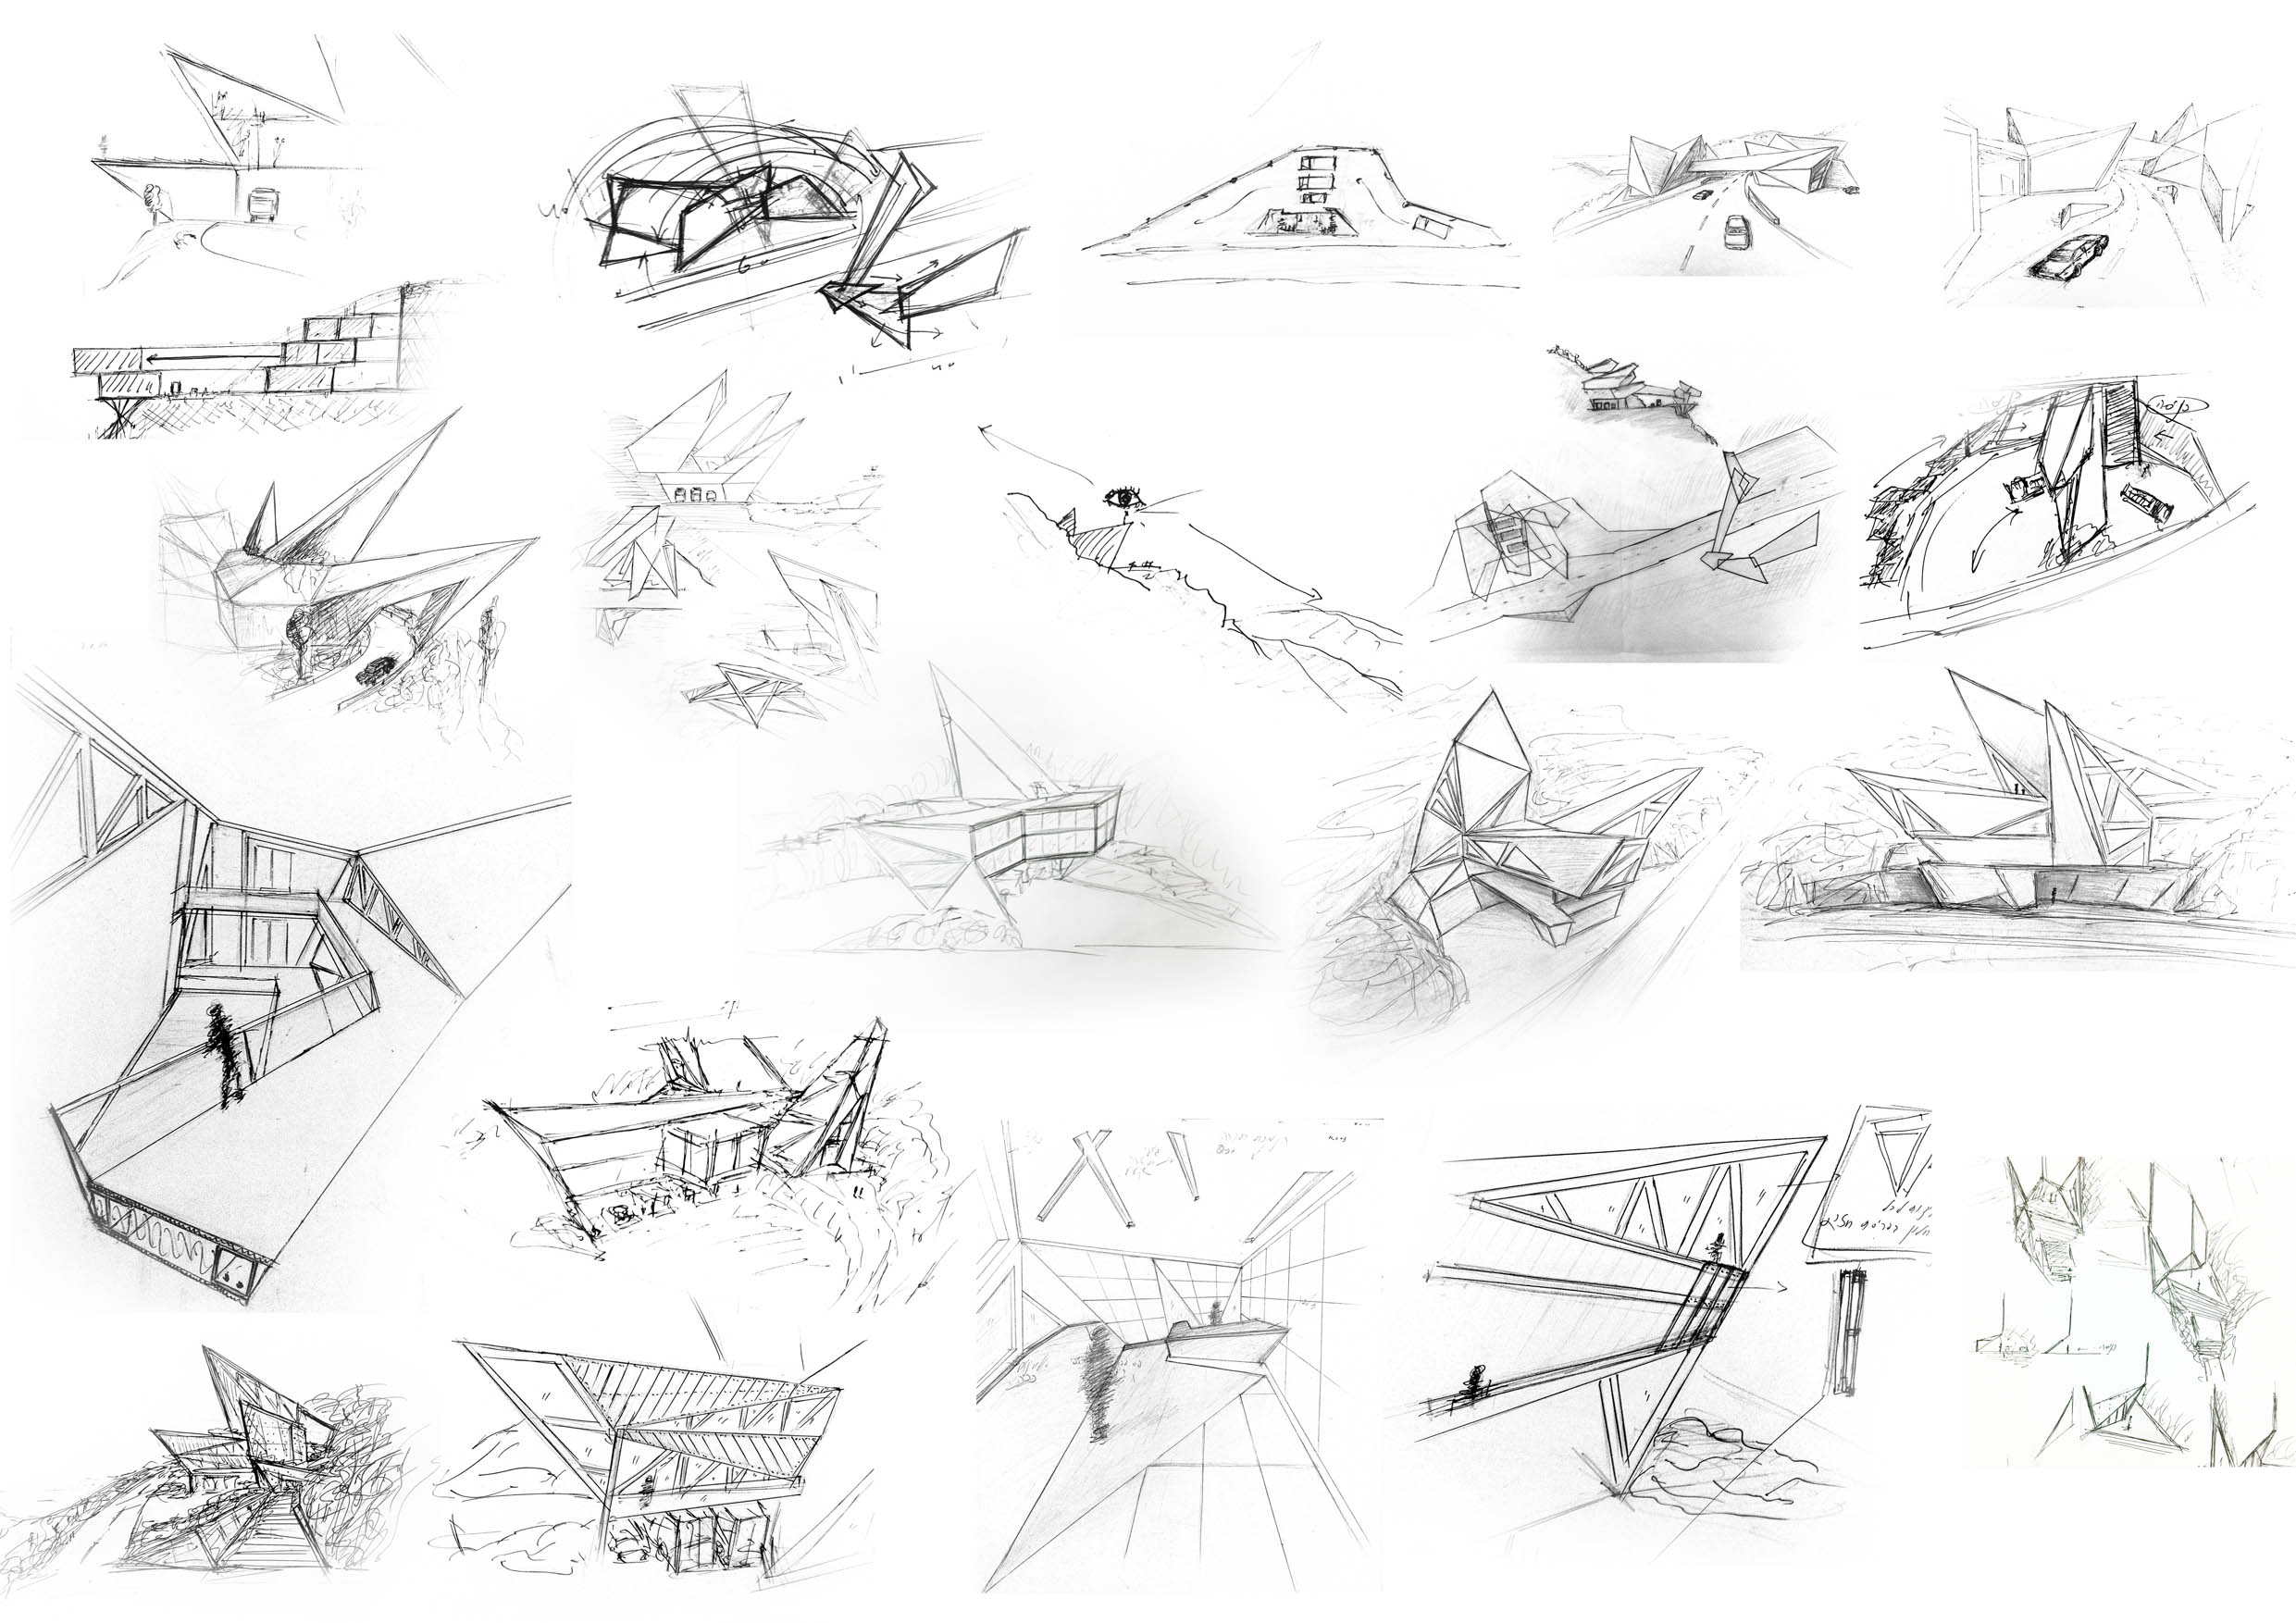 fire station and visitors site concept sketches archstudentcom